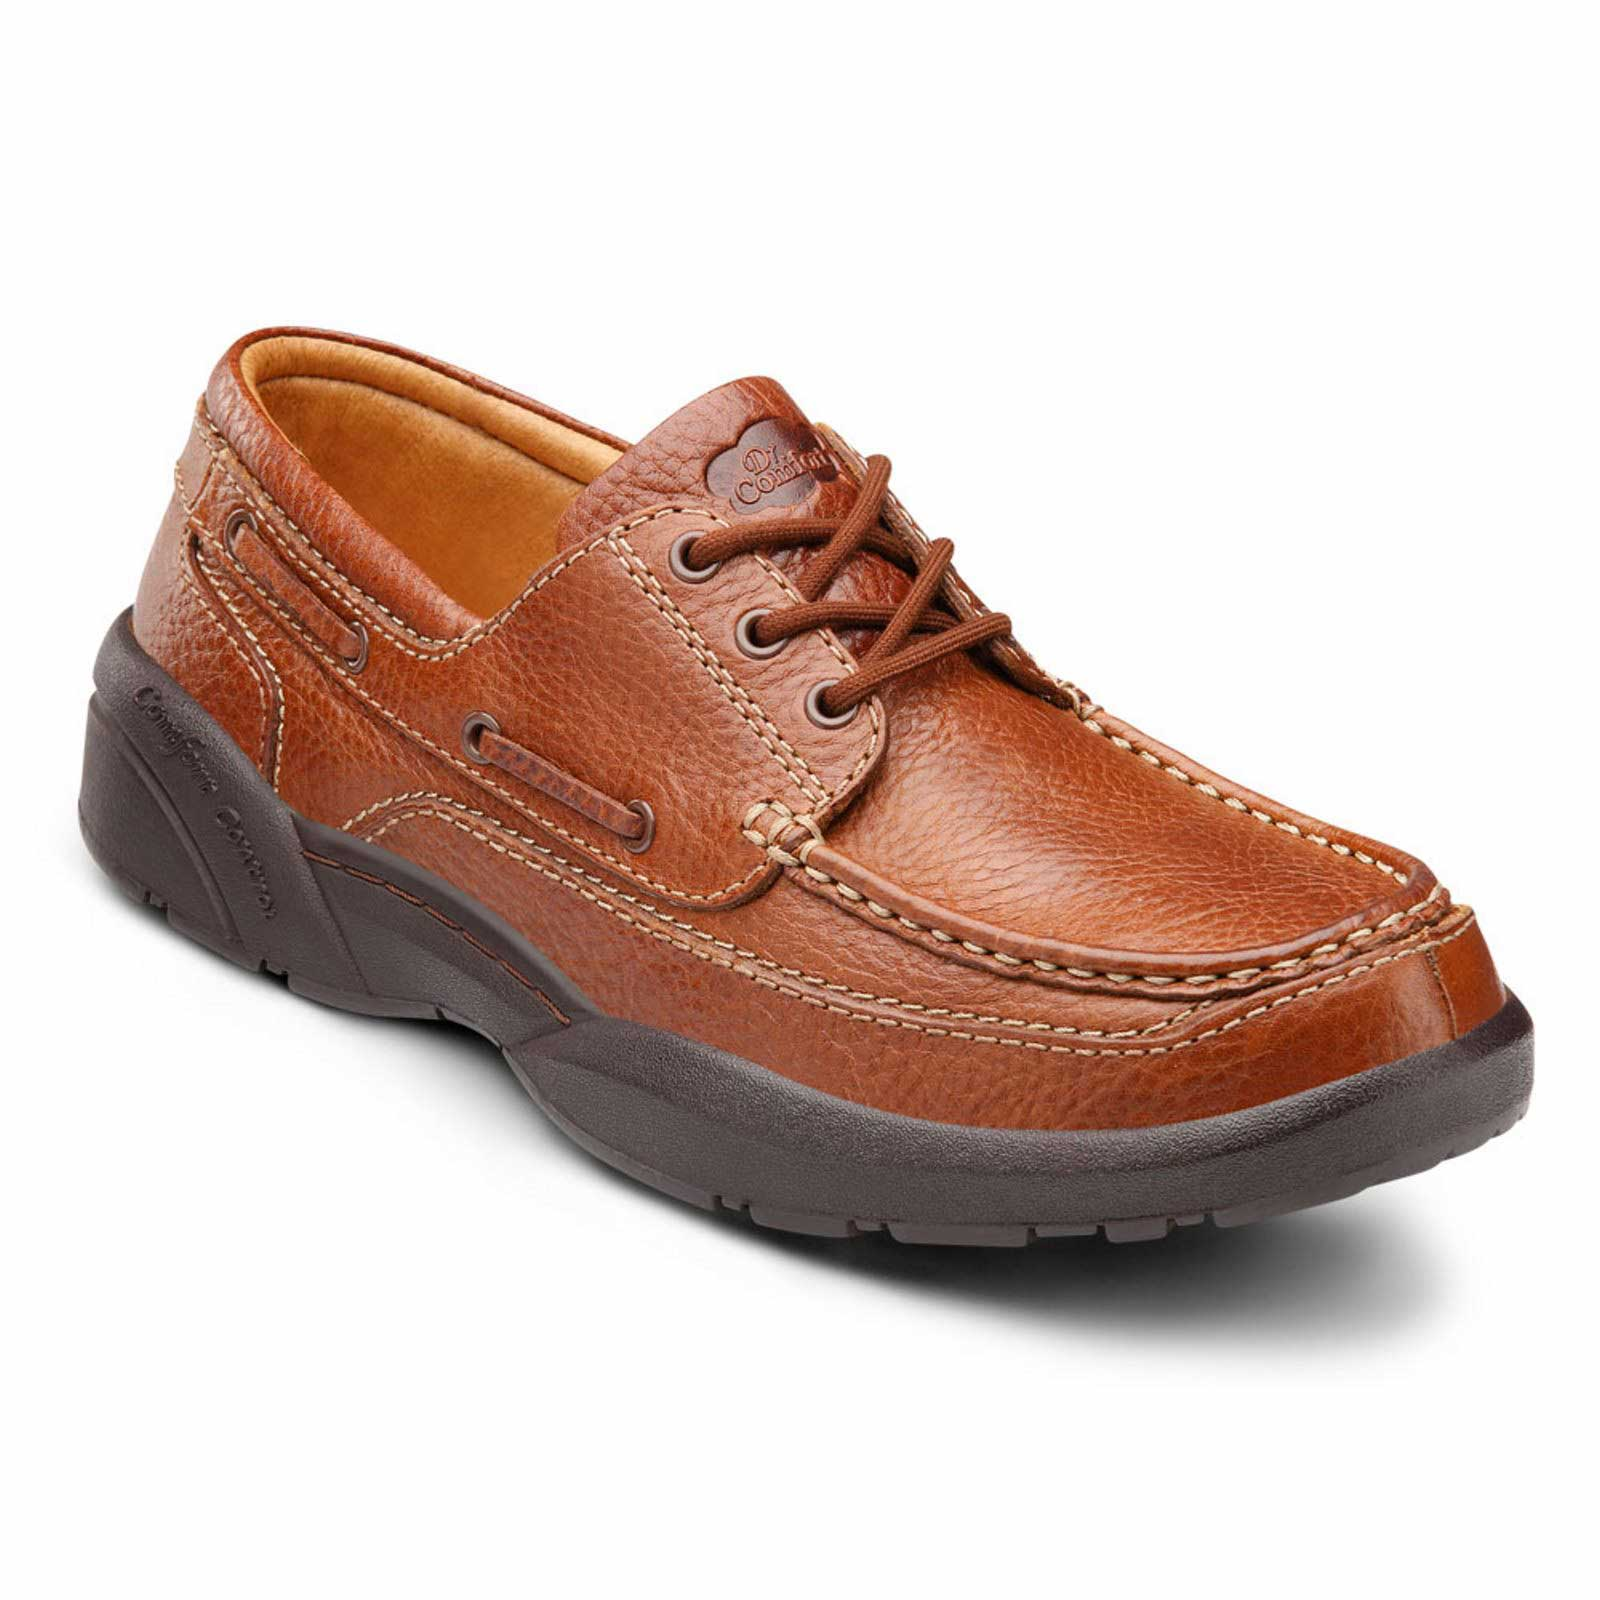 1b3c7f97412 Details about Dr. Comfort Patrick Men s Therapeutic Extra Depth Boat Shoe